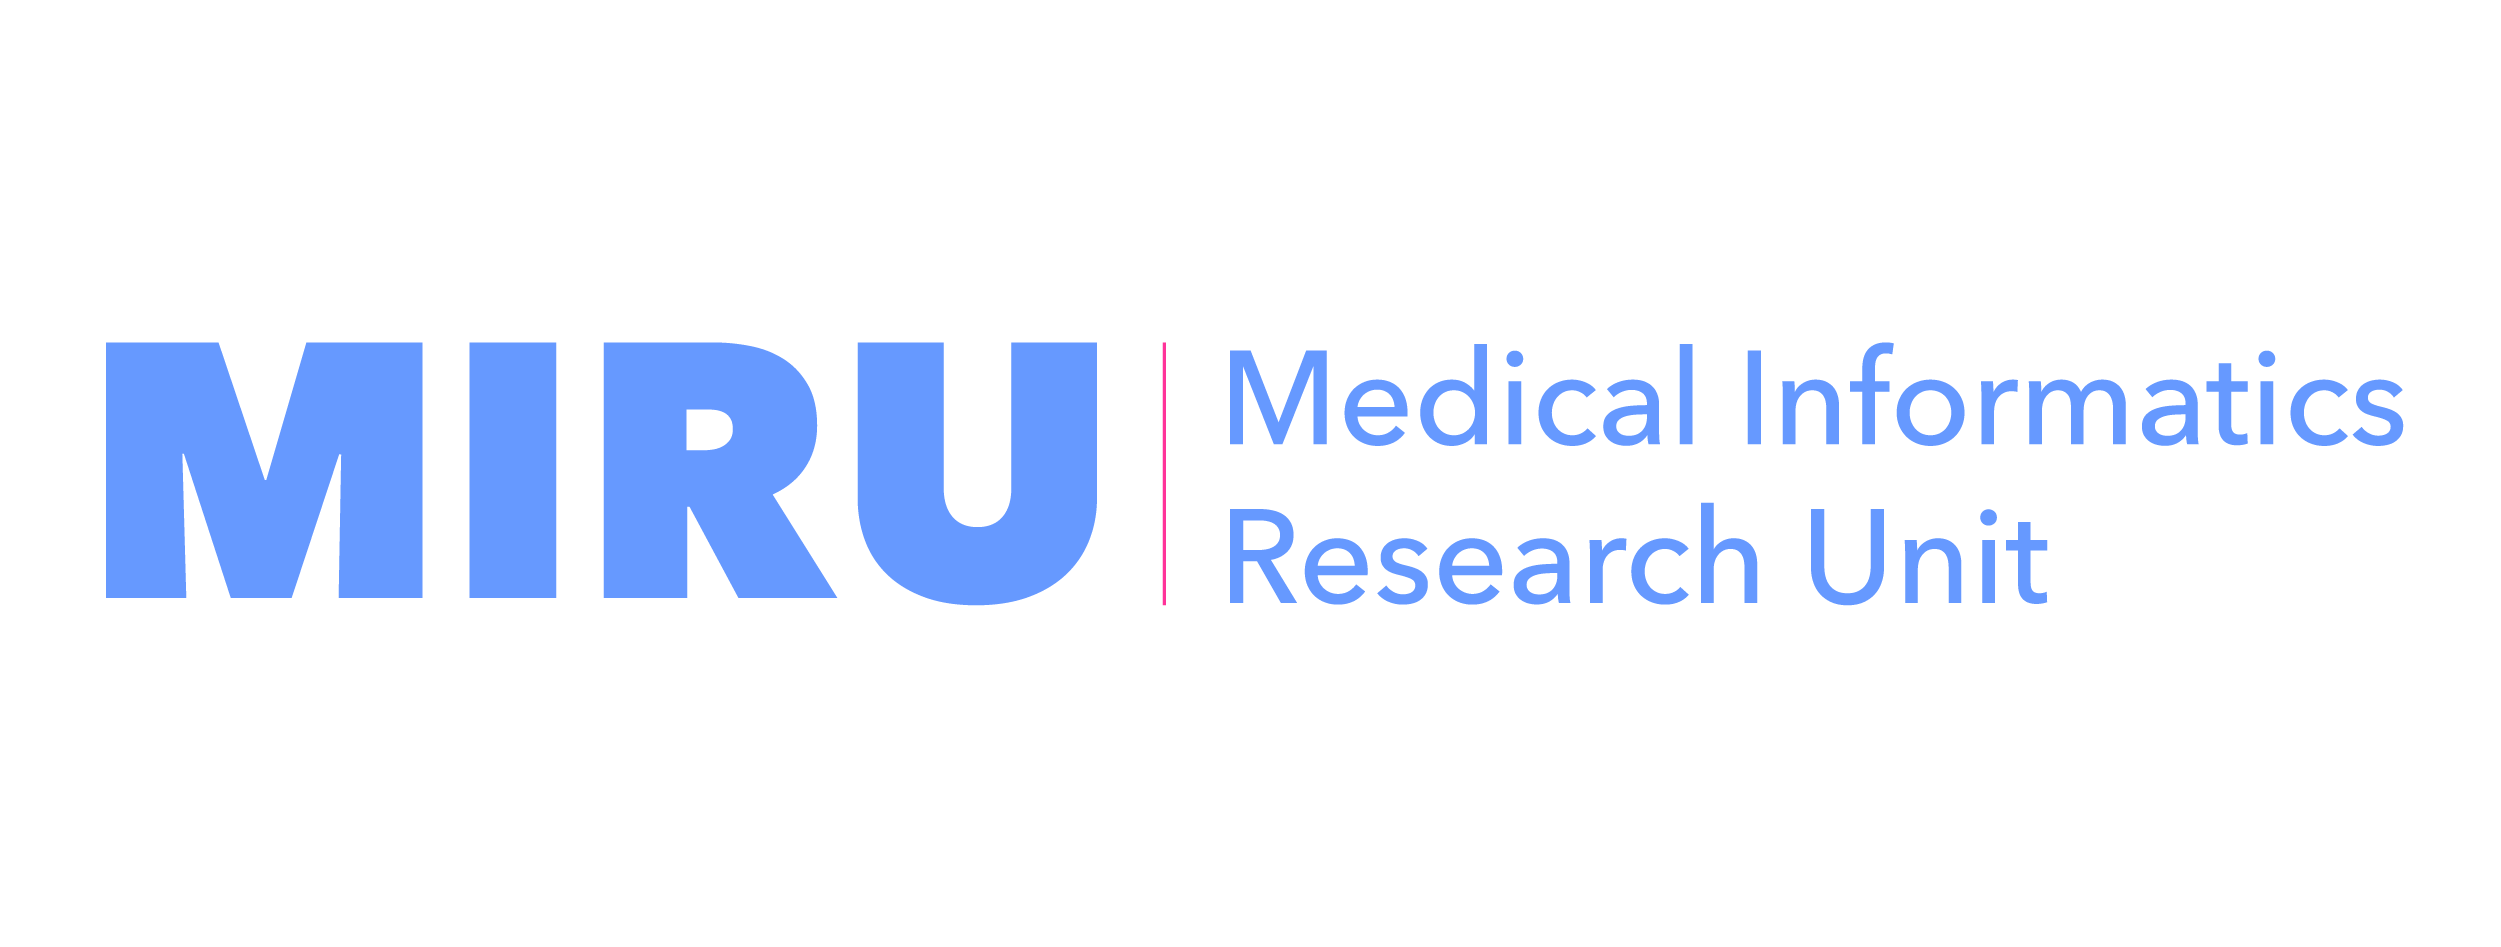 Medical Informatics Research Unit